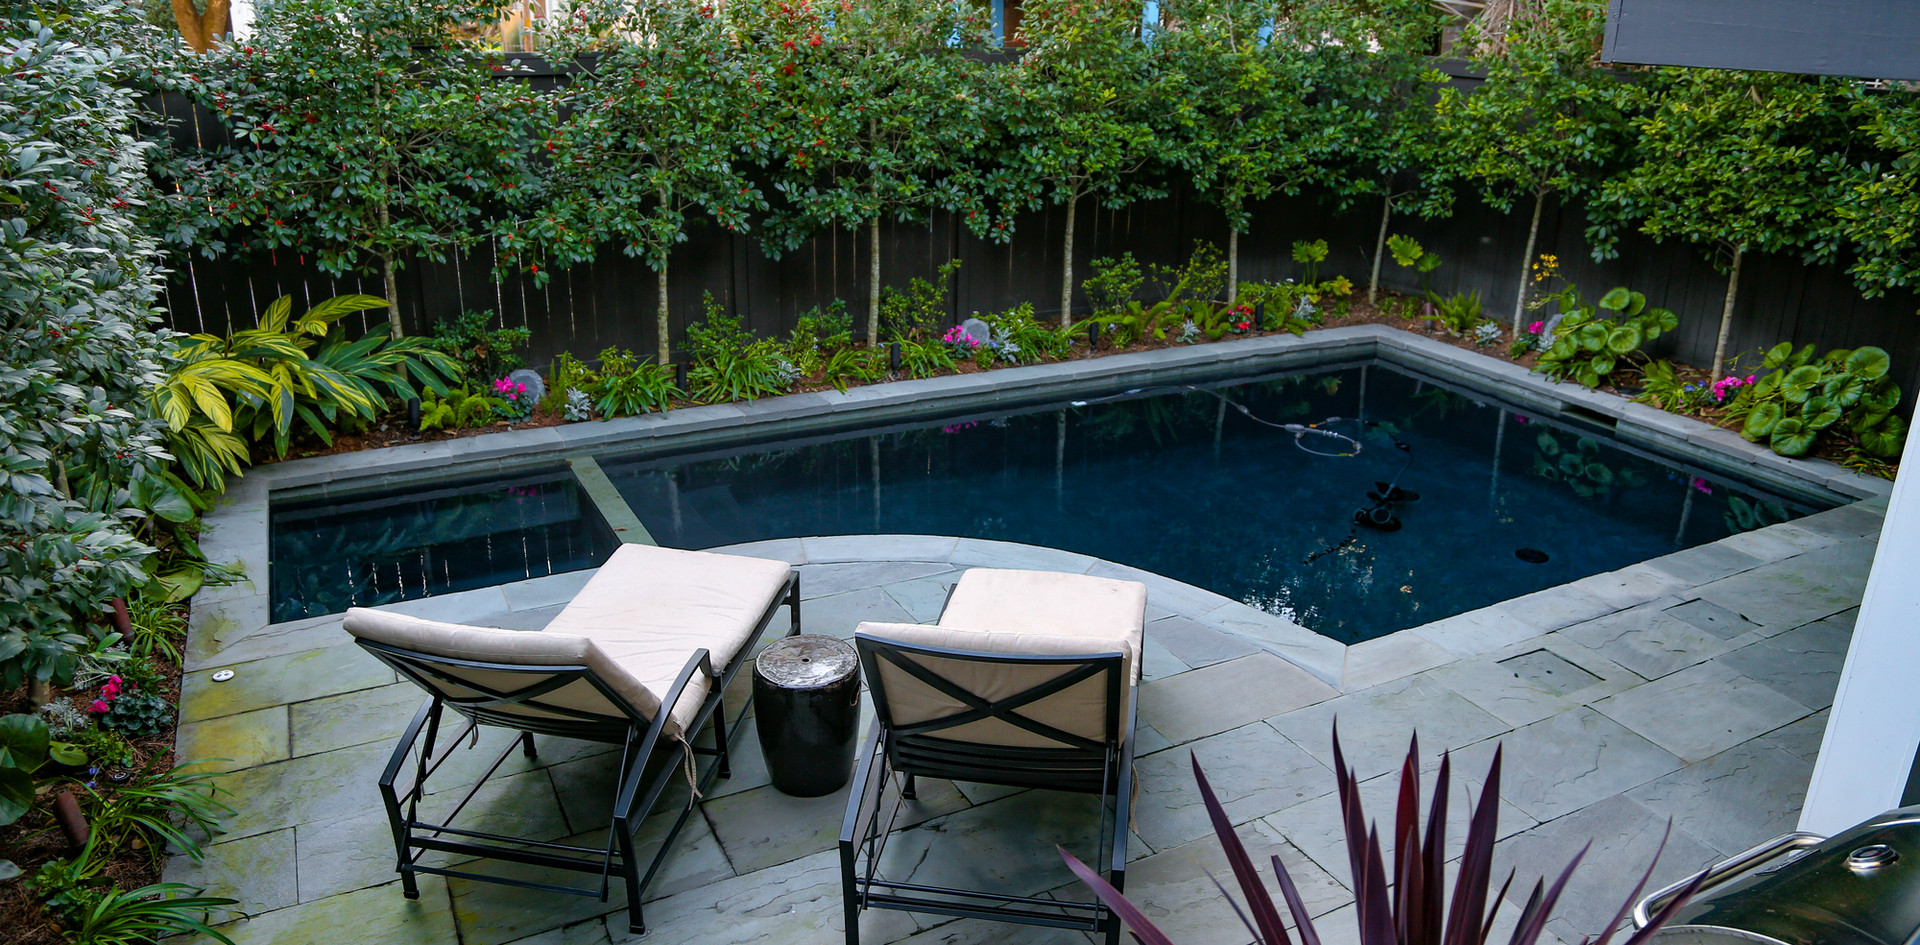 Pool, Patio and Landscaping